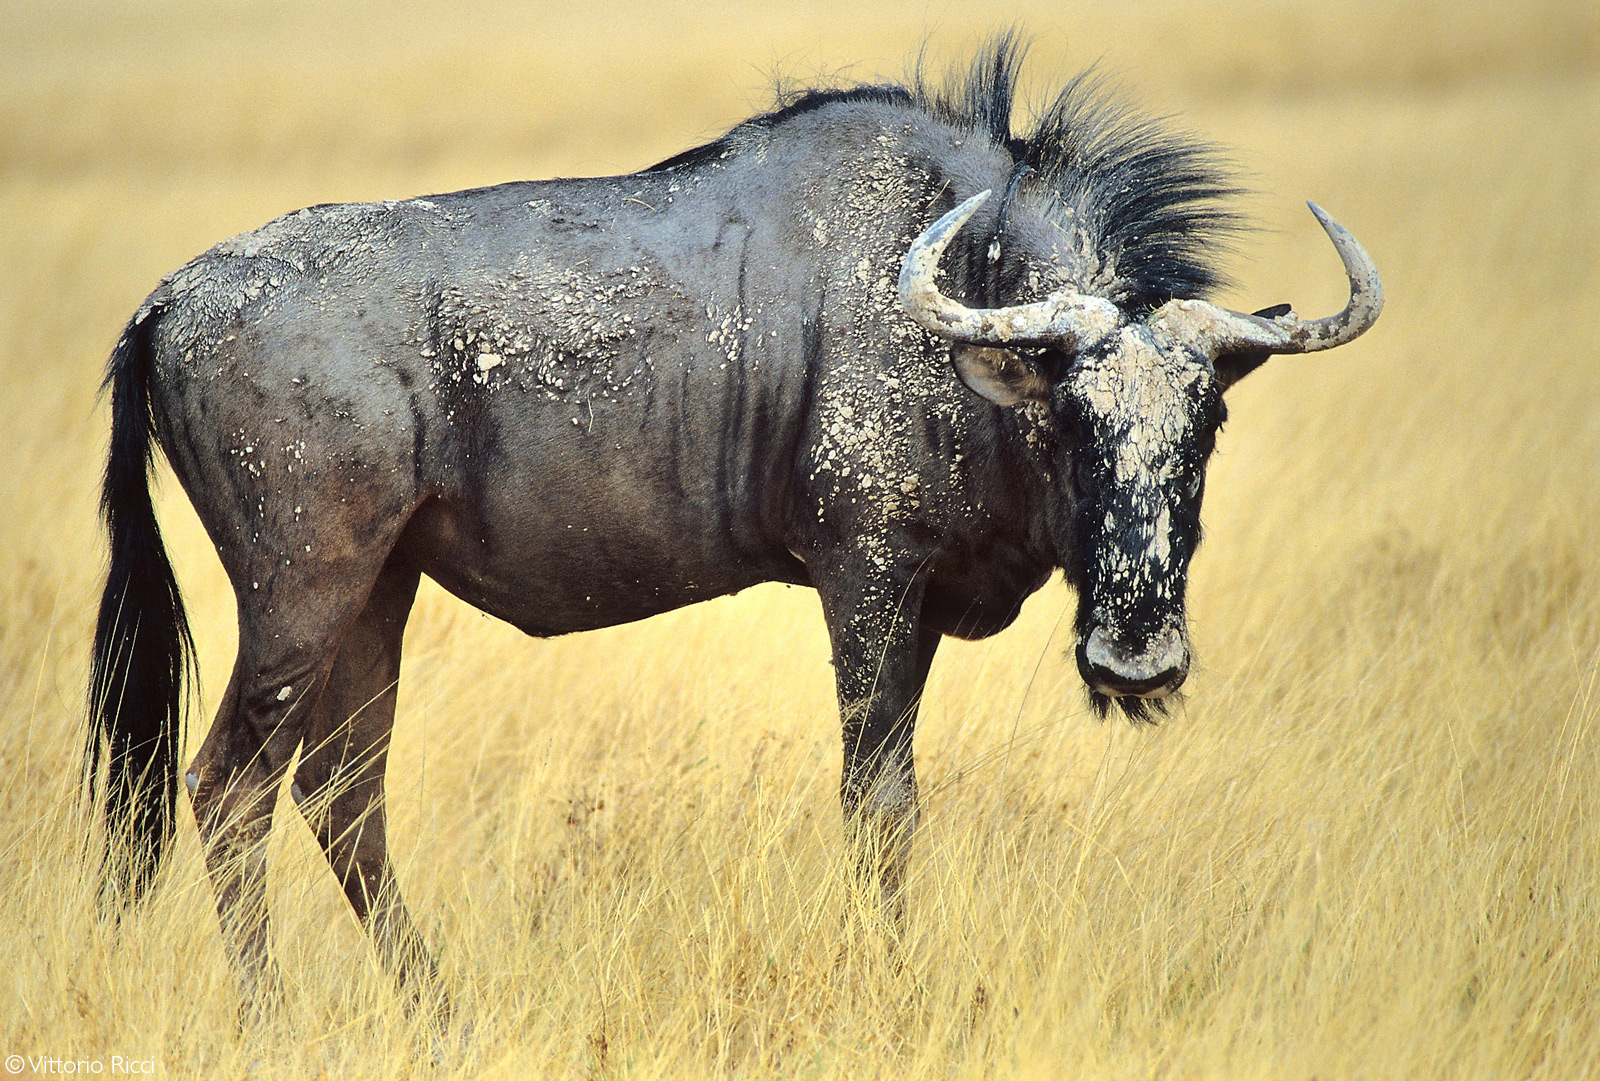 A wildebeest covered in dry mud amongst golden grass. Etosha National Park, Namibia © Vittorio Ricci